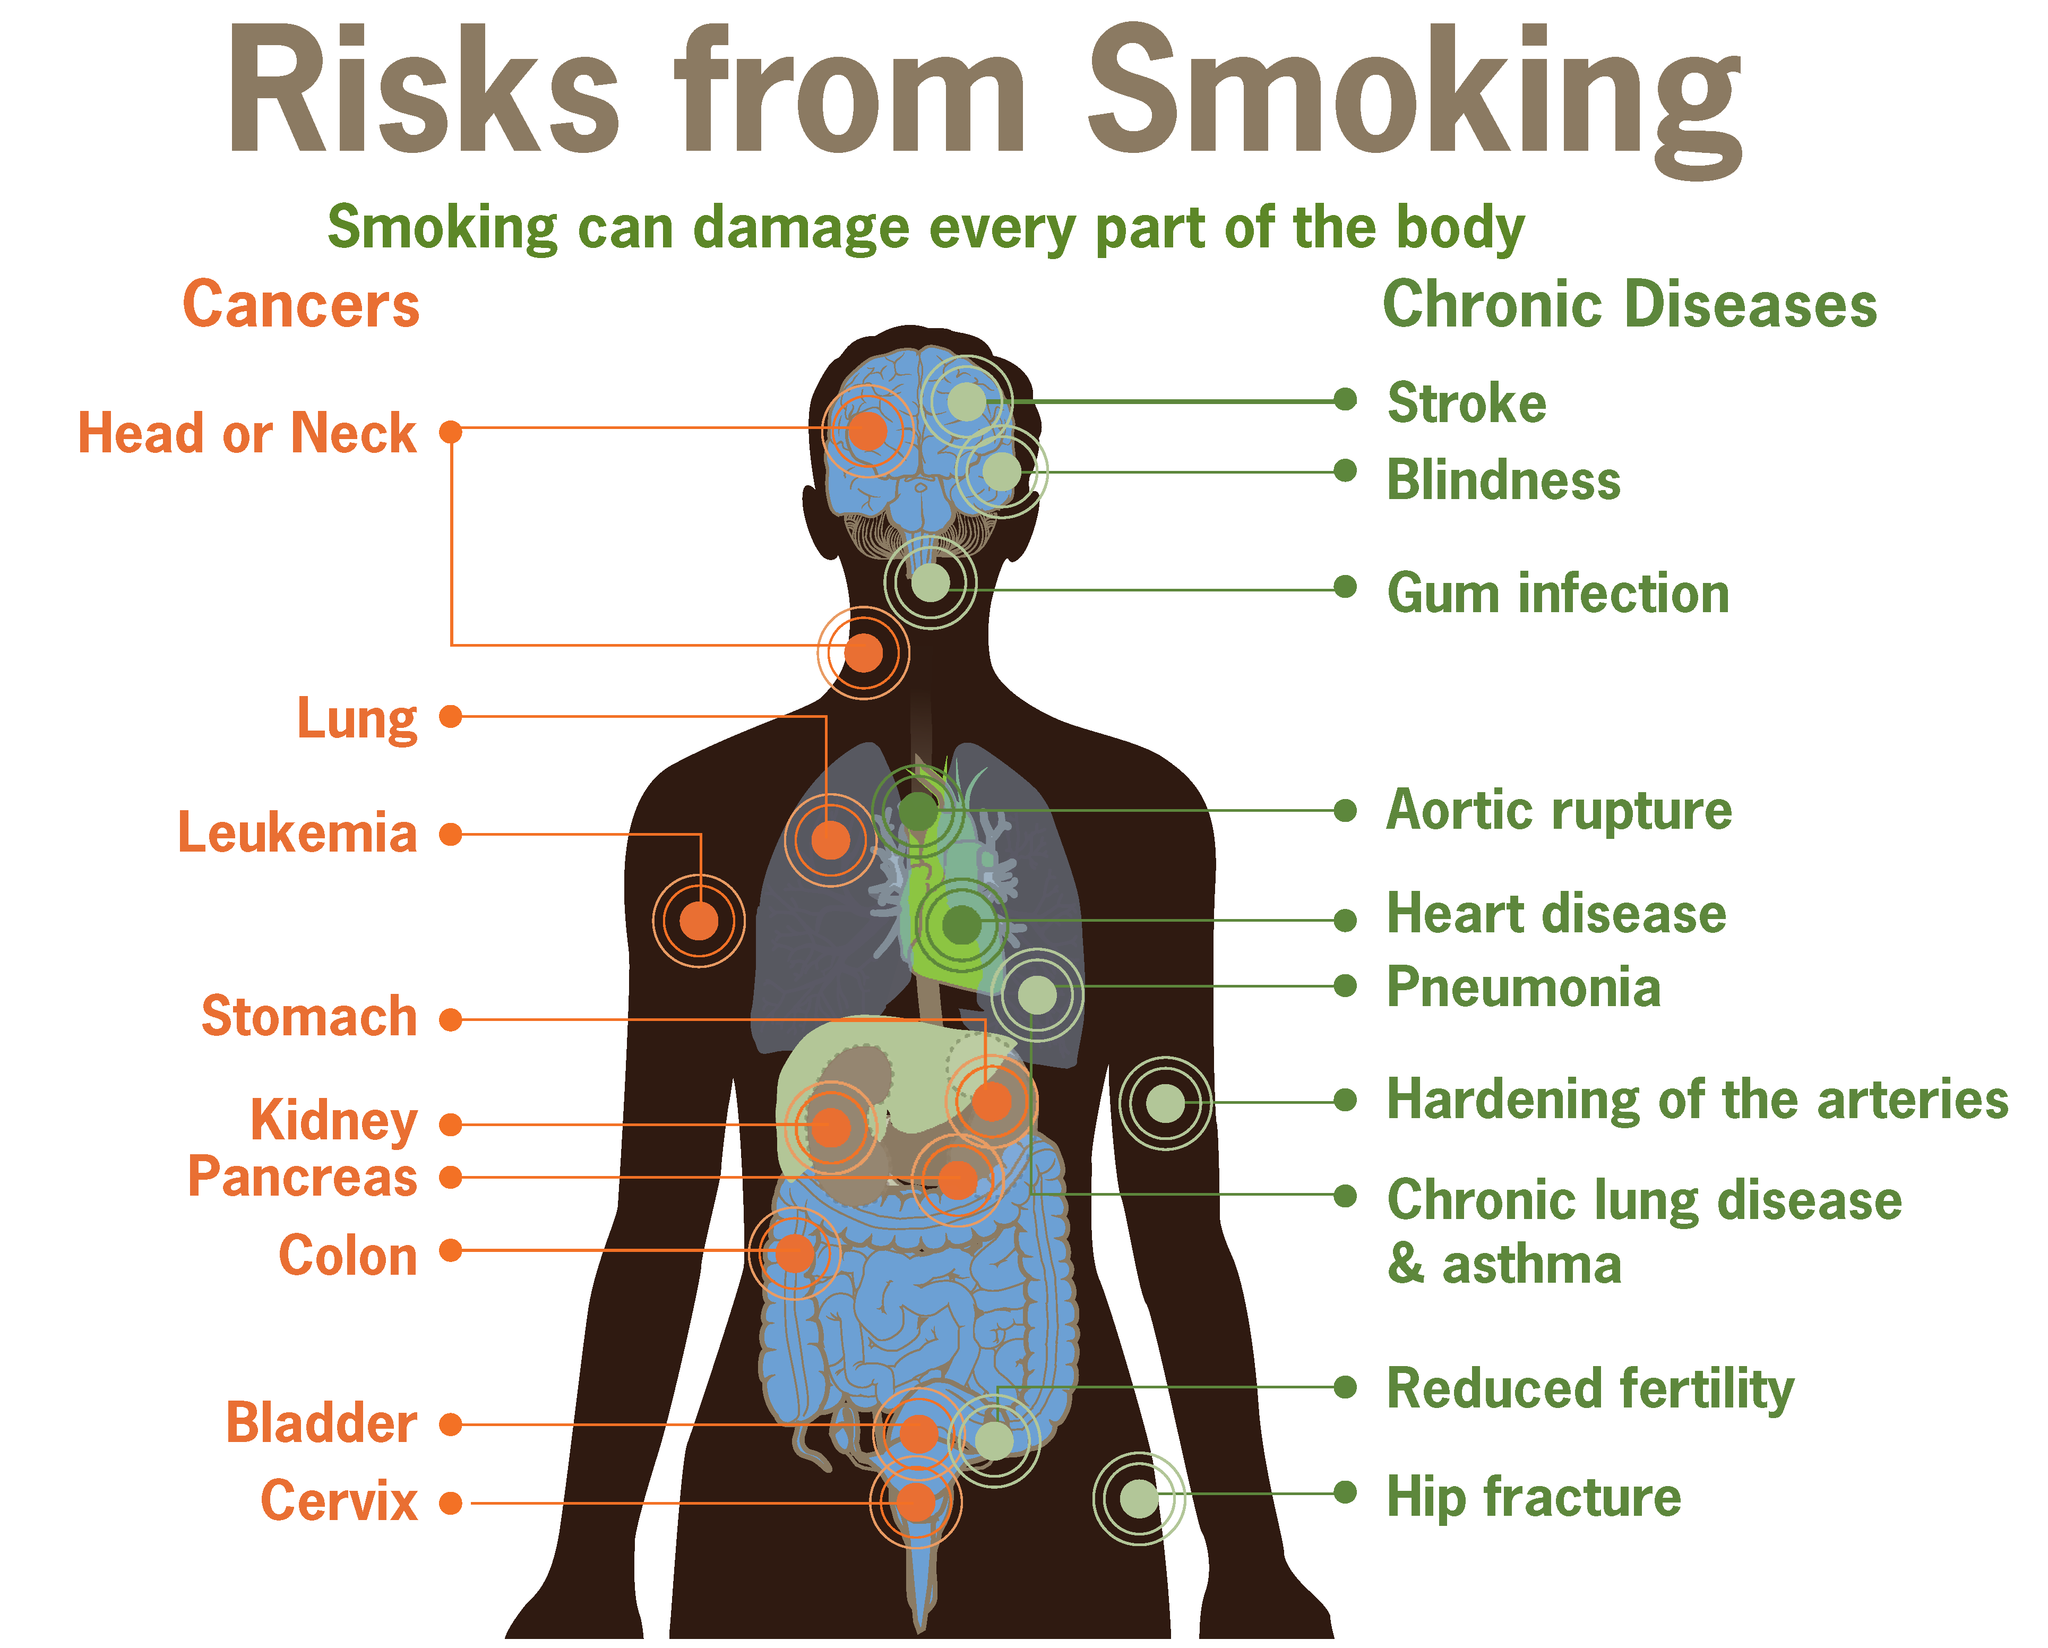 15.6.2 Effects of Smoking